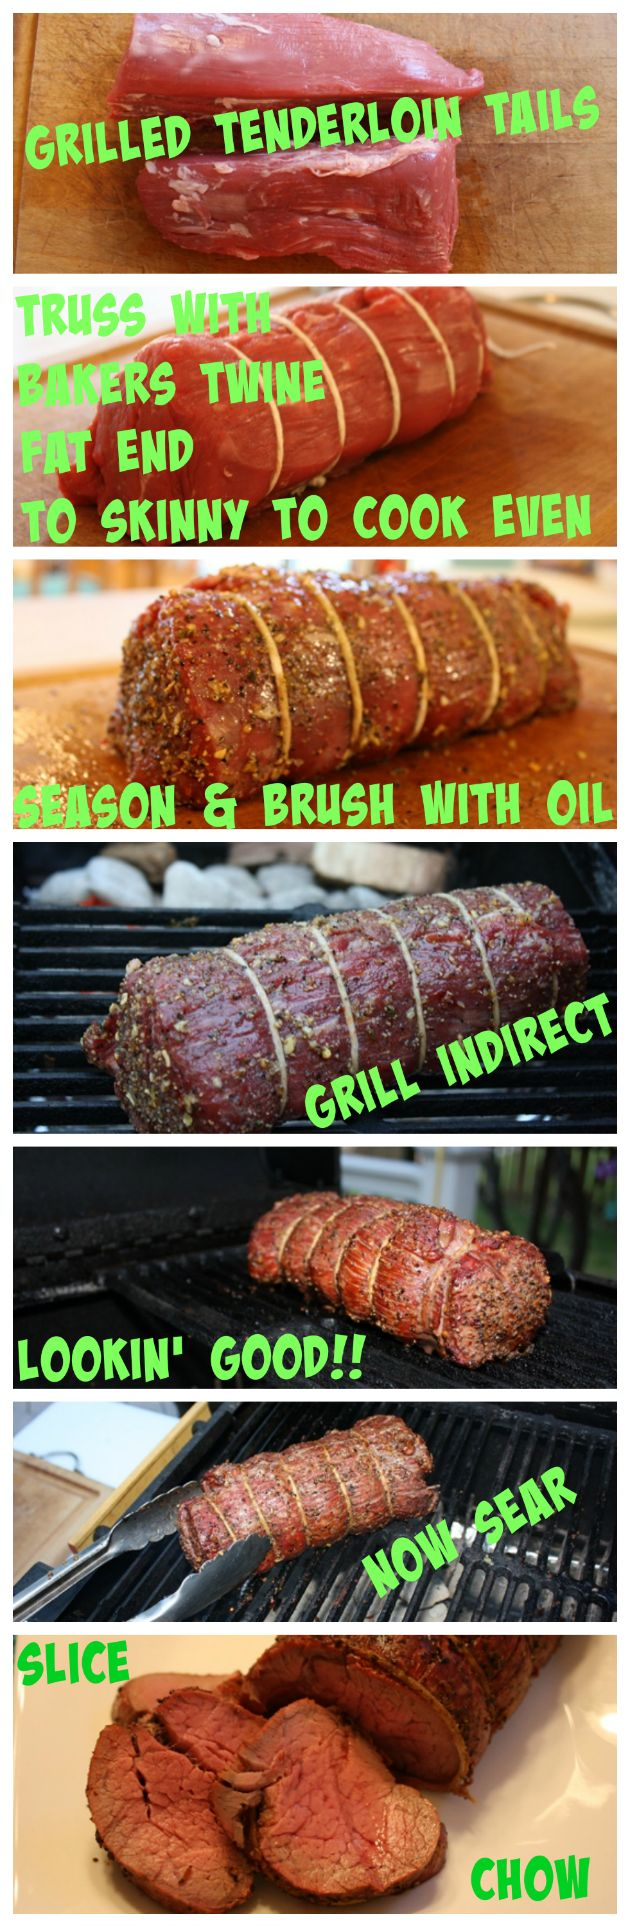 An explanation of what tenderloin tails are and how to grill them. | Grilled Beef Tenderloin Tails | https://grillinfools.com